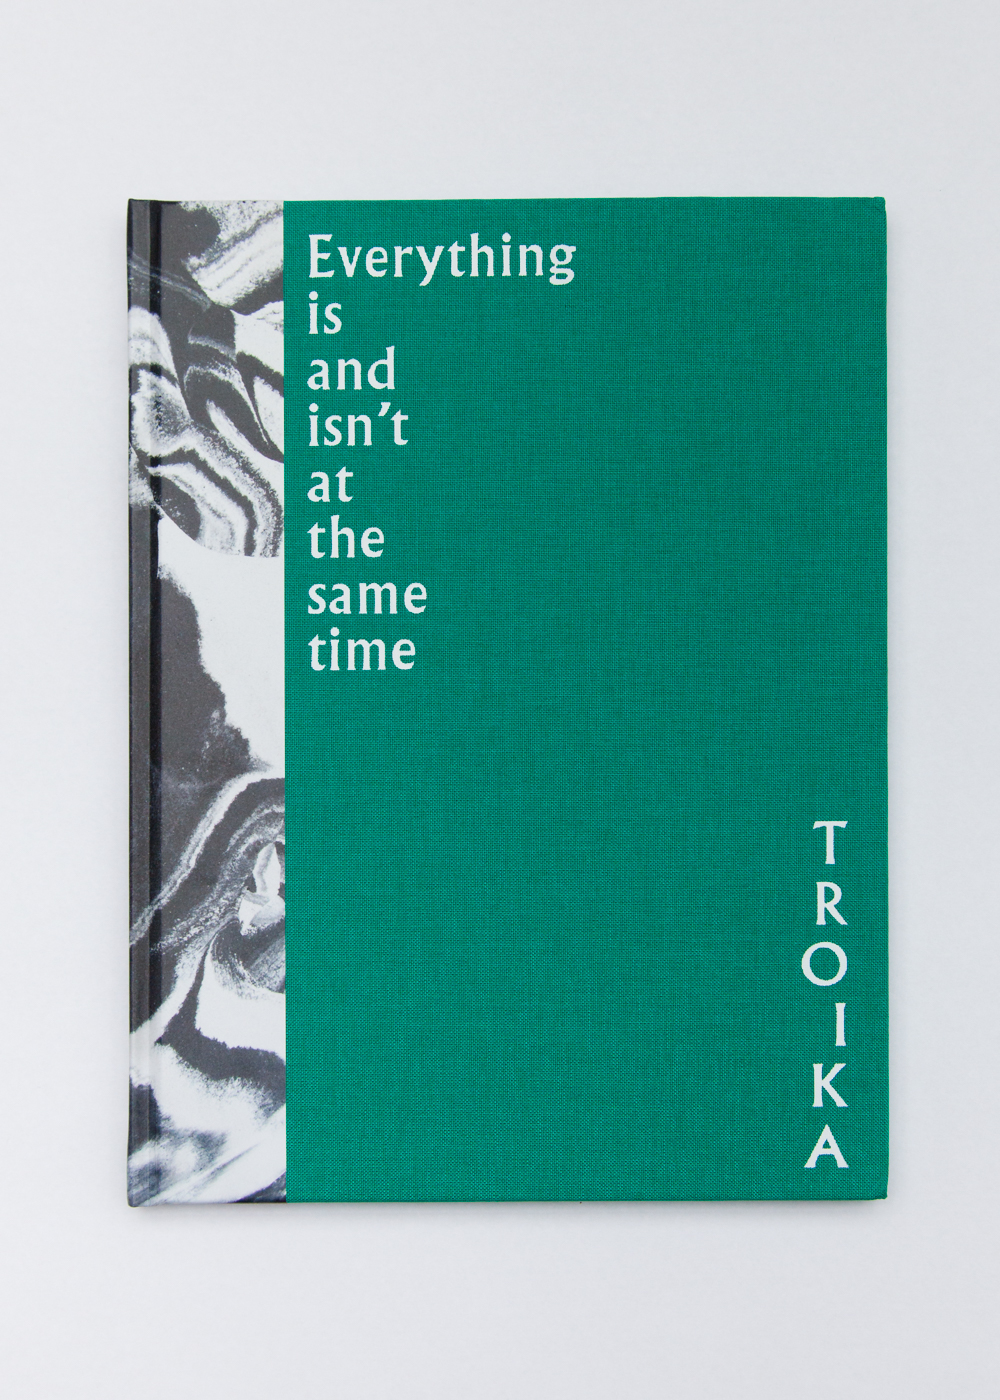 'Everything is and isn't at the same time' Exhibition catalogue, 2016 | Troika (Conny Freyer, Eva Rucki, Sebastien Noel(